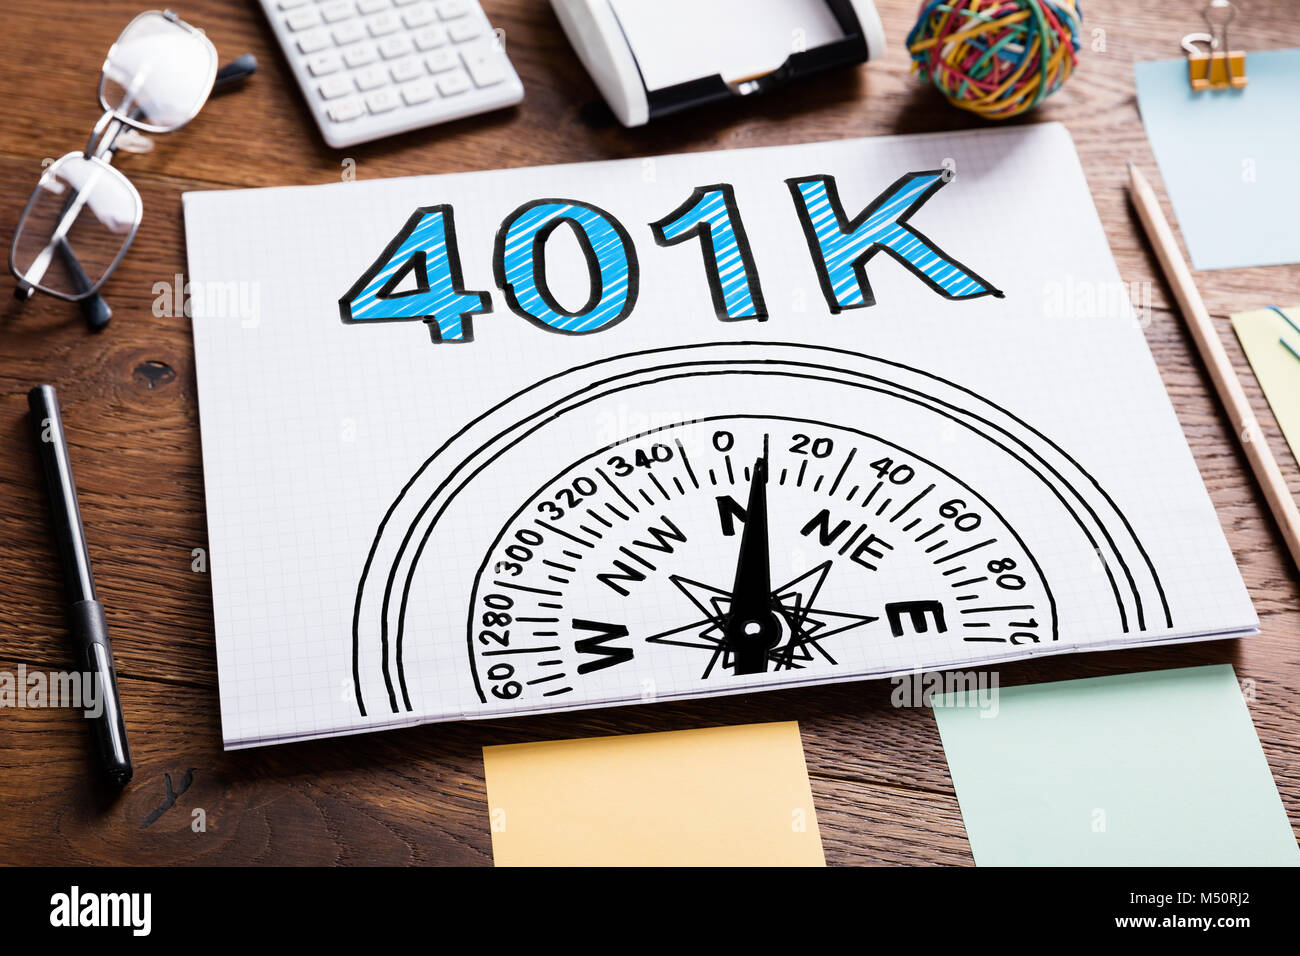 401k Pension Plan In Notebook On The Table - Stock Image